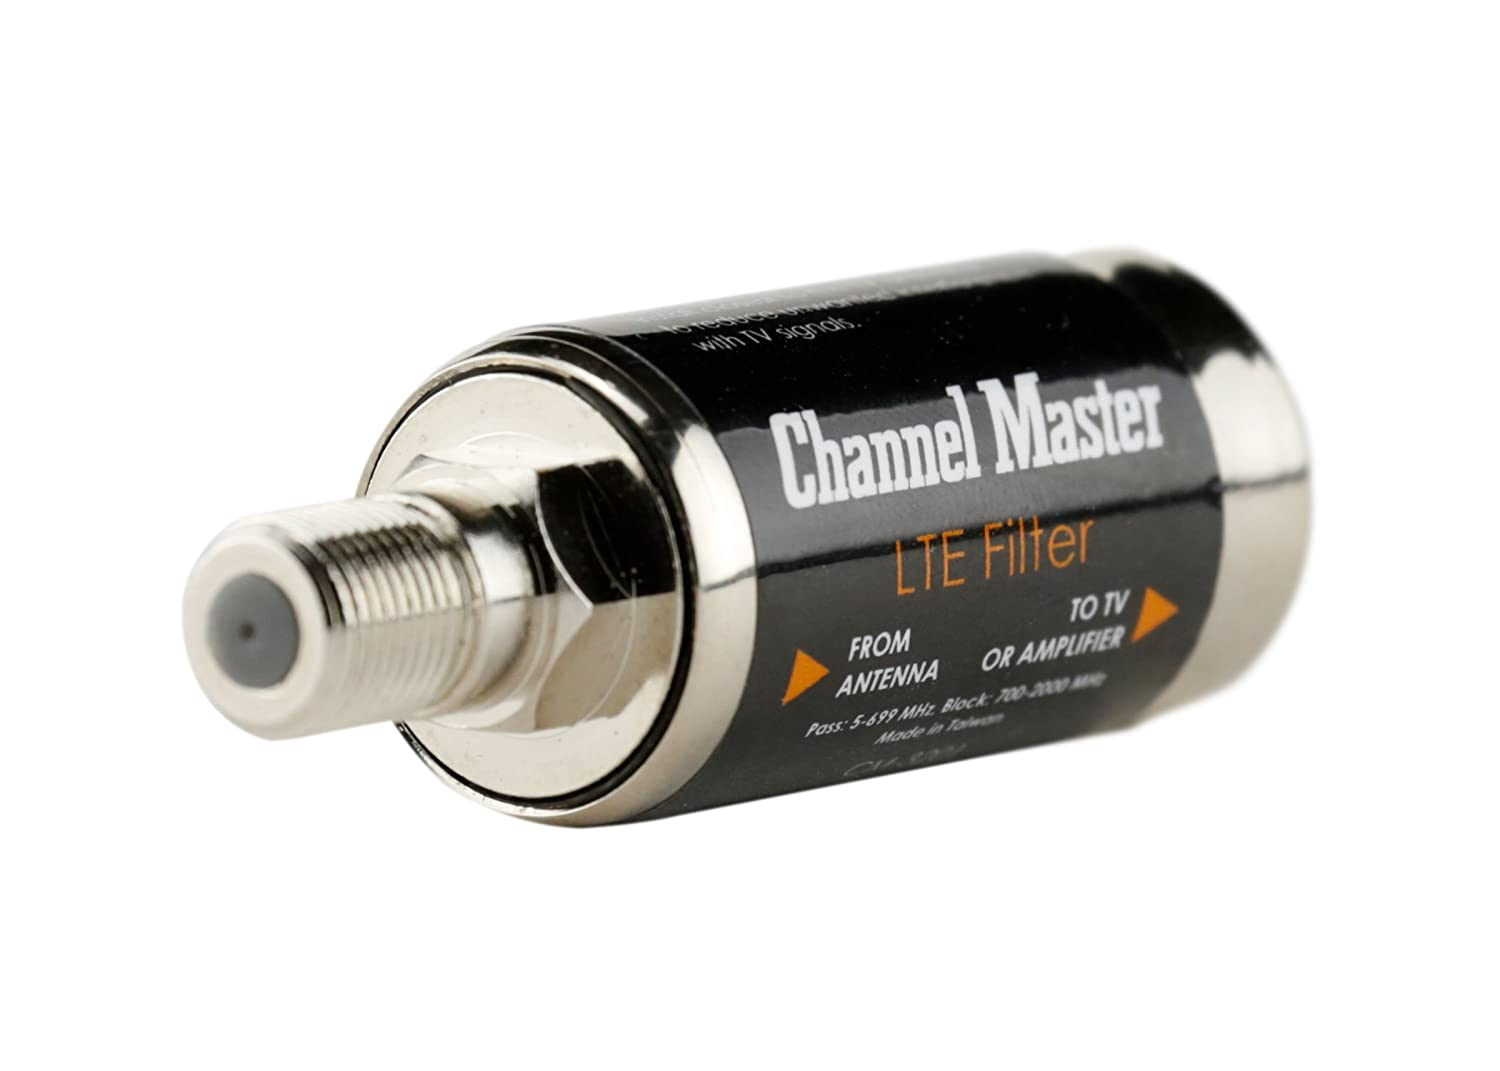 Channel Master LTE Filter Improves TV Antenna Signals CM3201